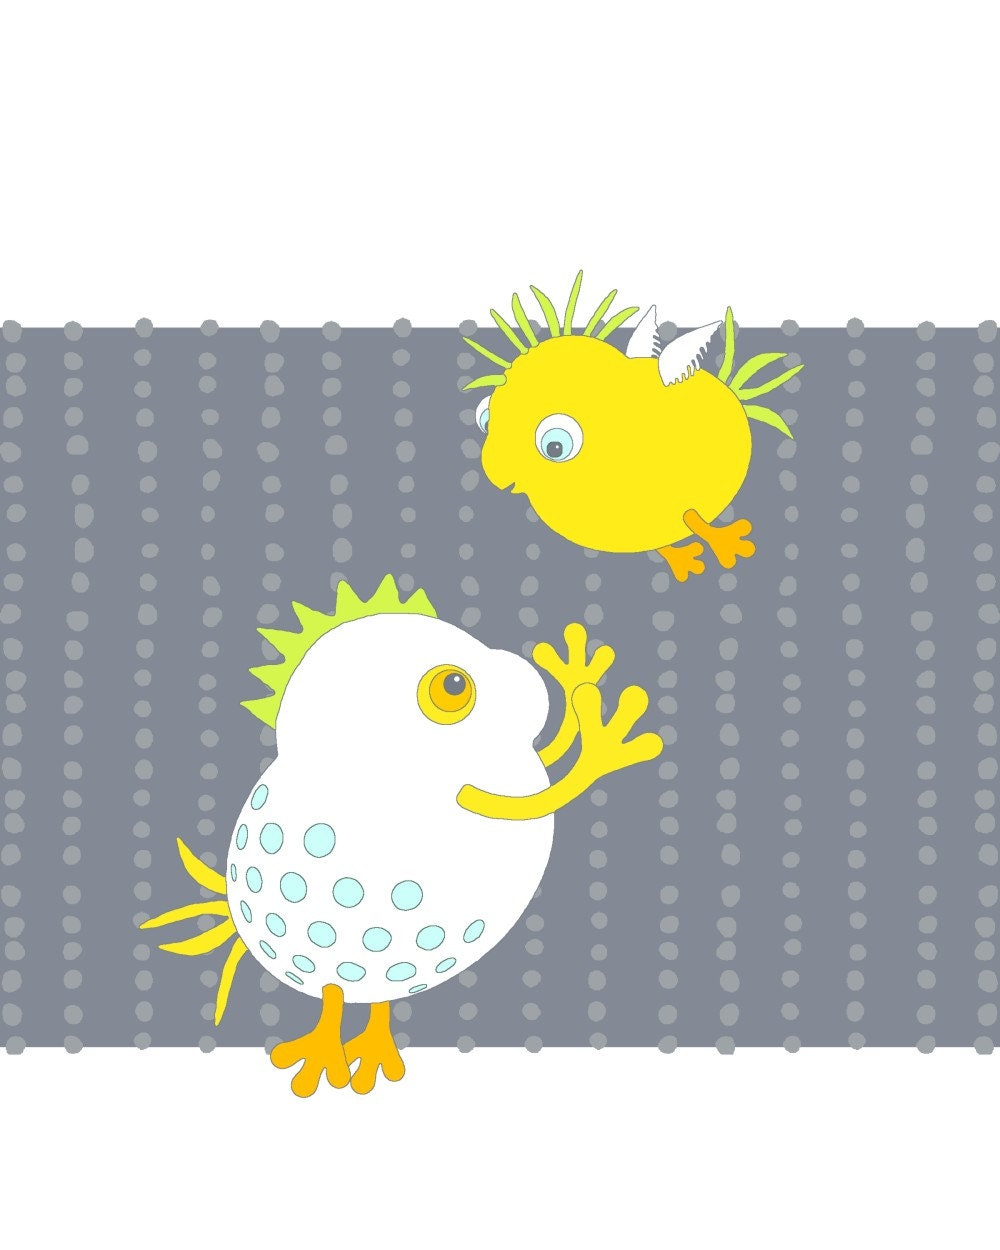 Cute monster mother and child, nursery wall decor, children's art, digital illustration, bird, gray, yellow, 65 (I Can Fly)